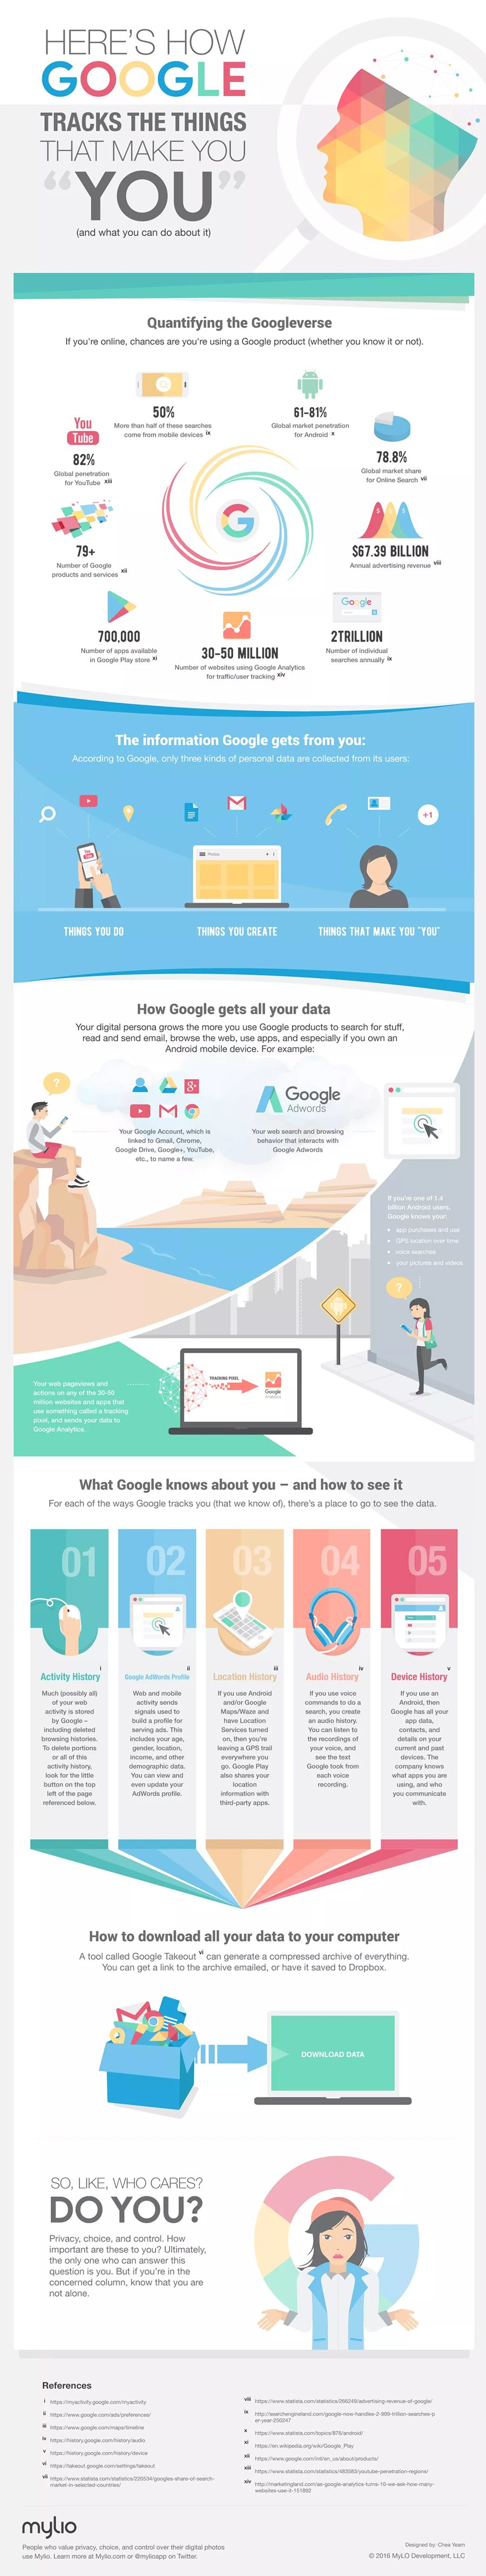 Google is Watching You Infographic